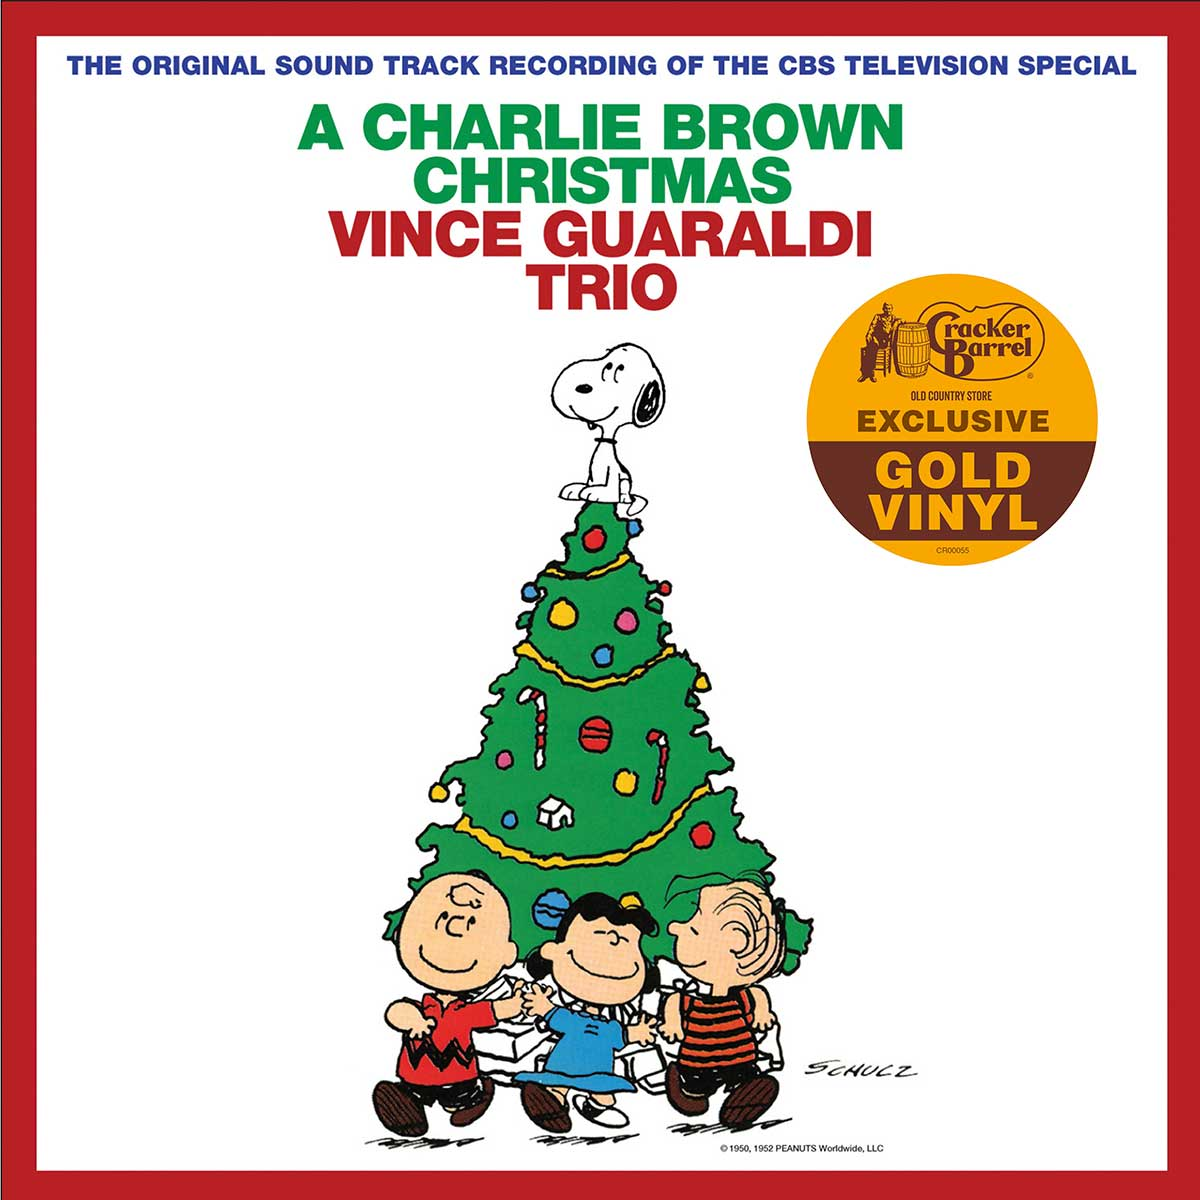 shop.crackerbarrel.com: Vince Guaraldi Trio - A Charlie Brown ...